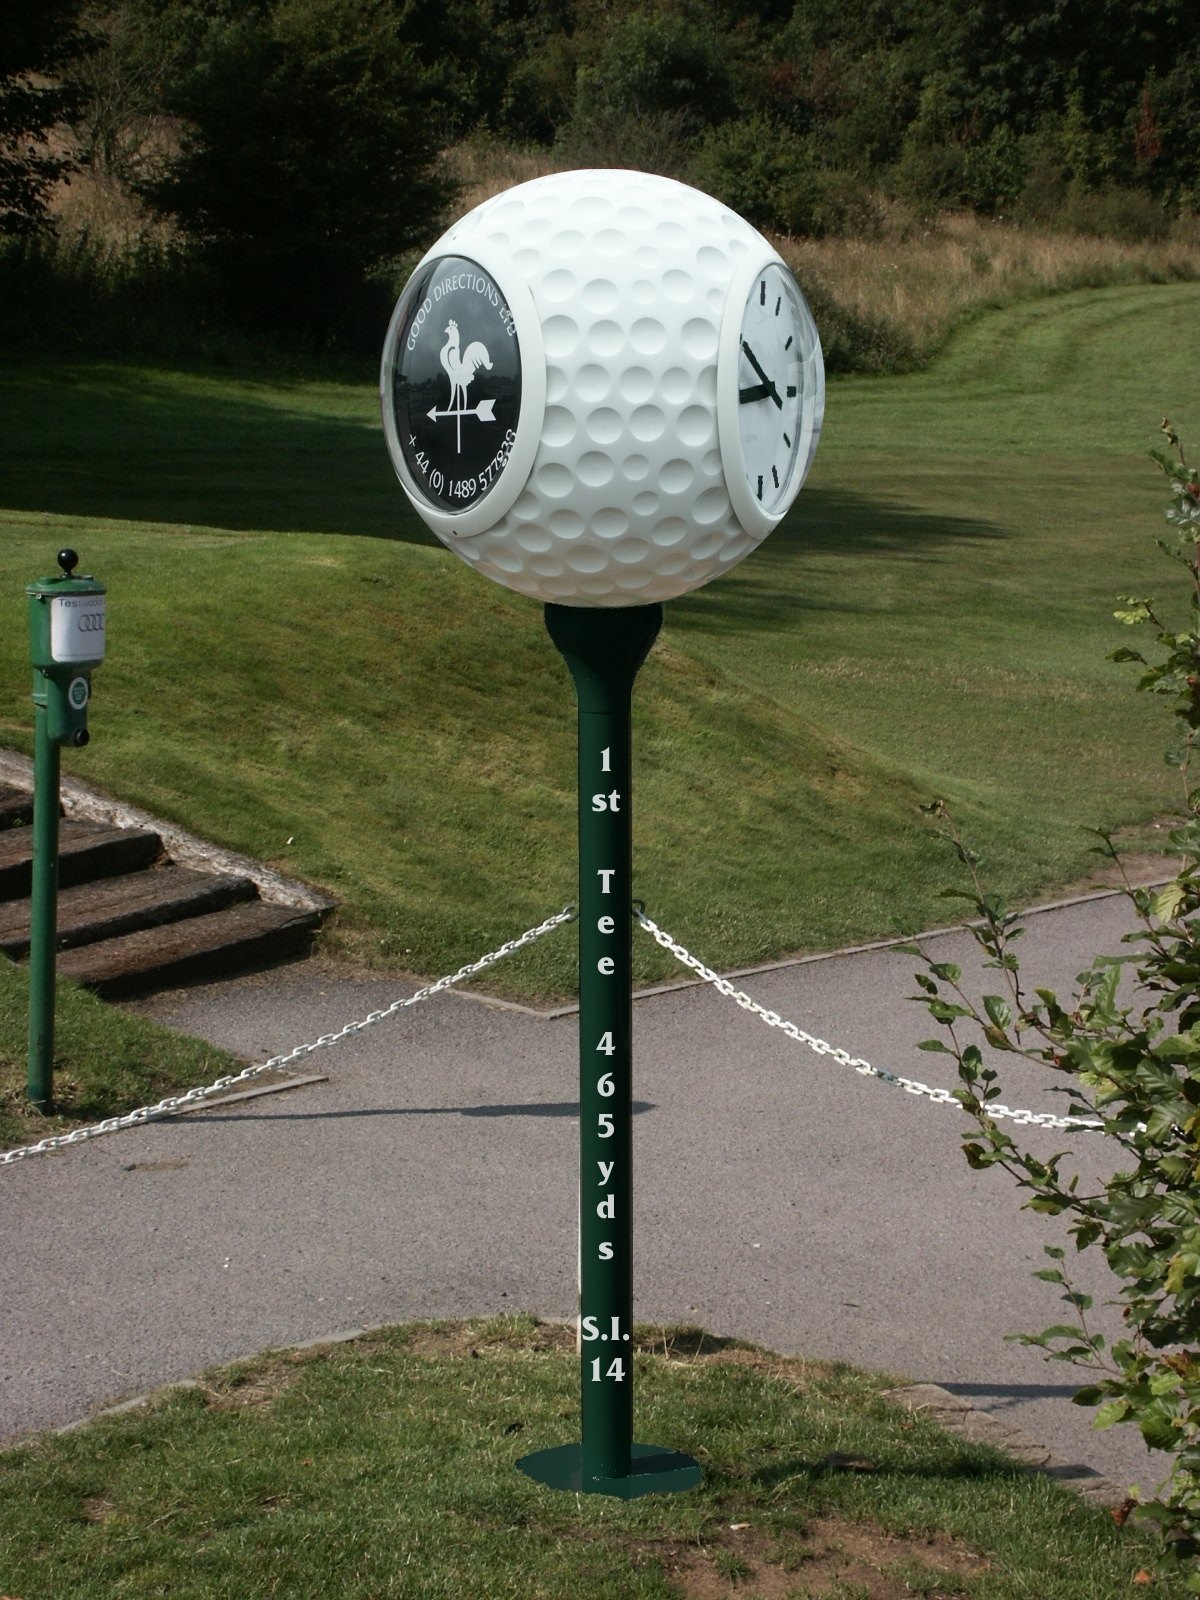 Clock looking like a golf ball